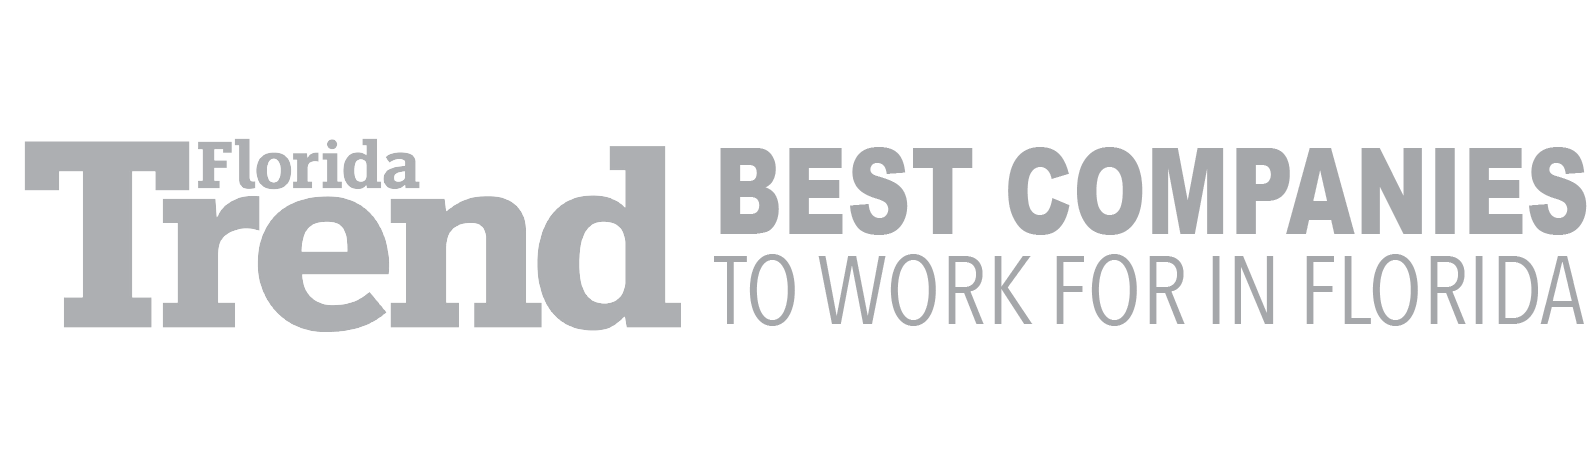 Best Companies to Work for lightpng